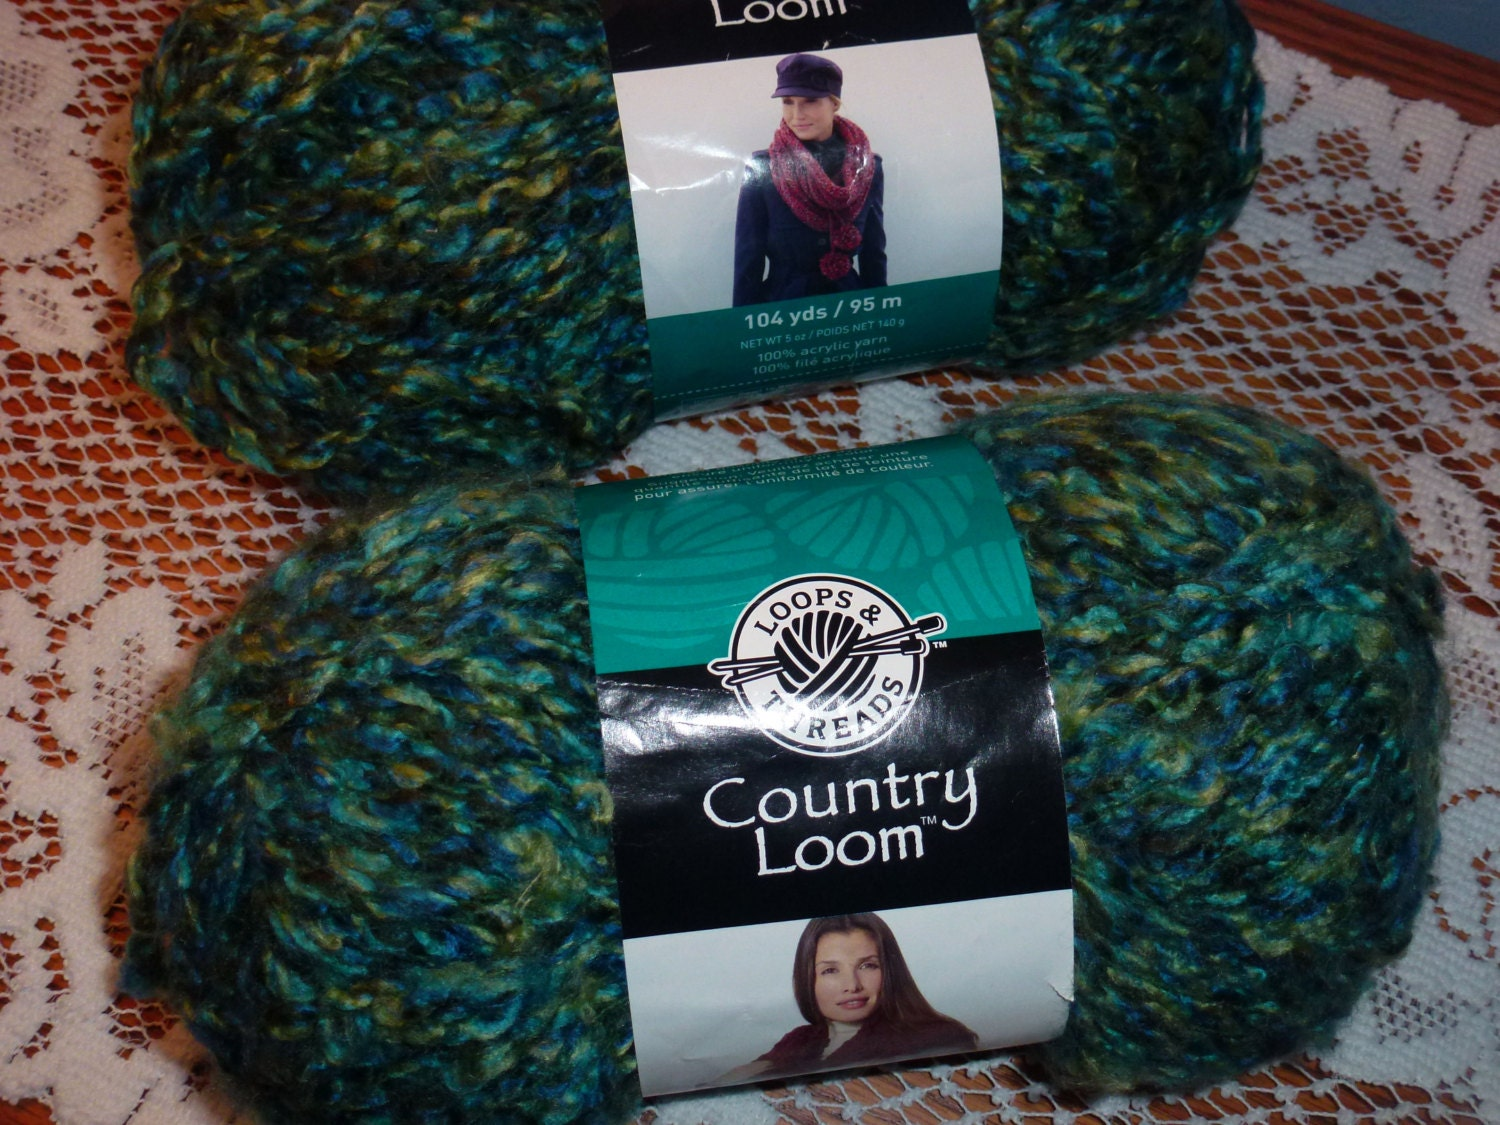 Loops And Threads Knitting Patterns : Loops and threads country loom yarn solarium skeins